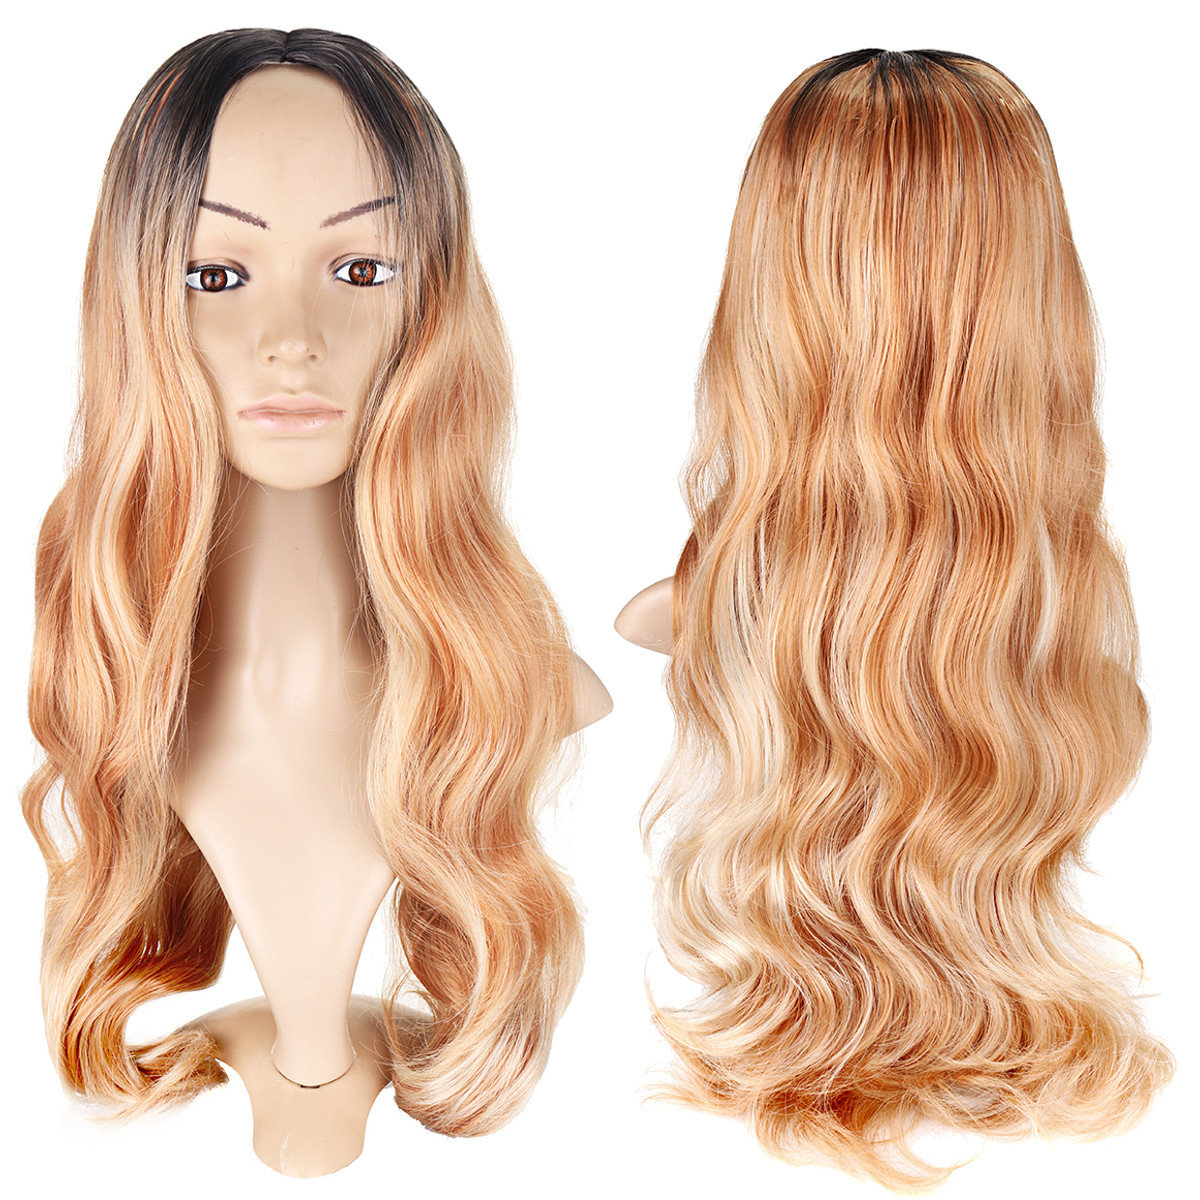 59d85dac1 Women Long Curly Synthetic Wigs Blonde Heat Resistant Synthetic Hair  Natural Wavy Wigs - NewChic